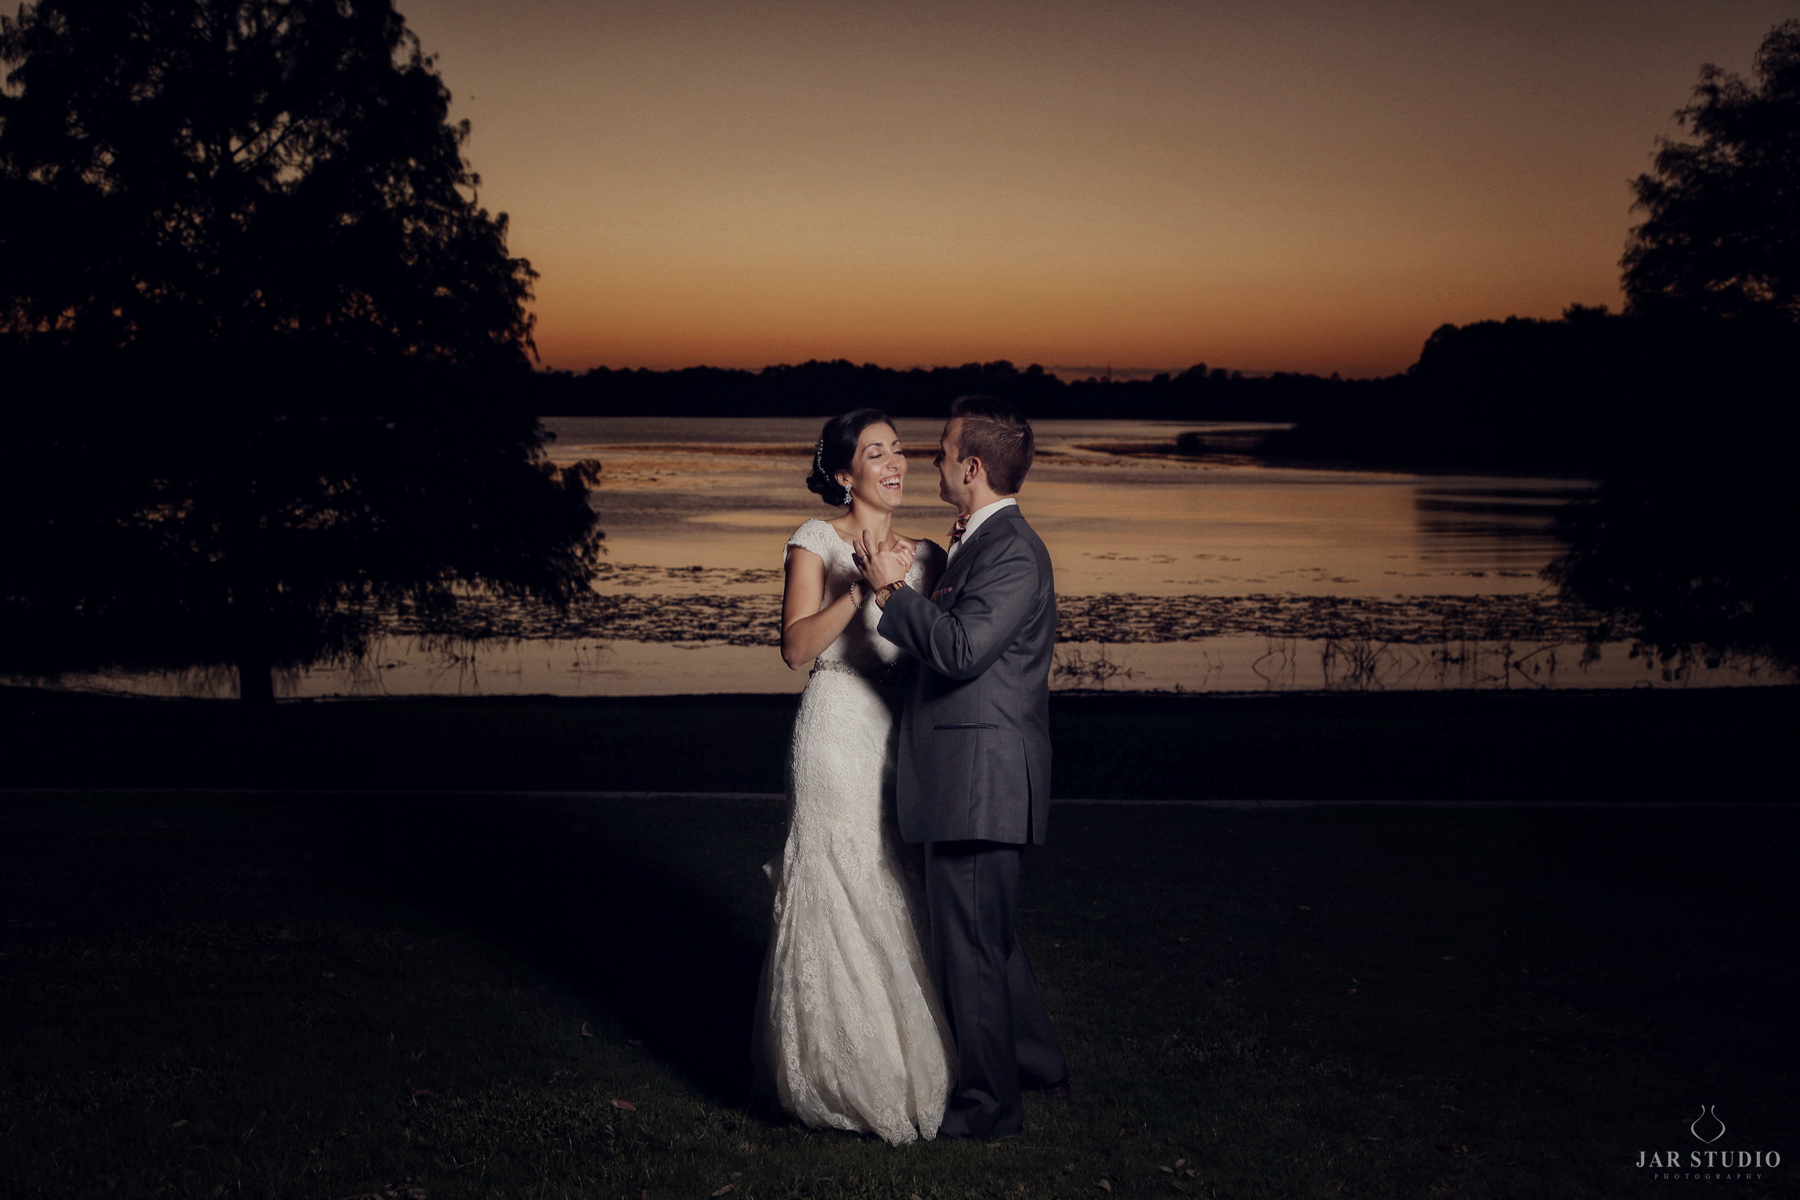 40-beautiful-places-for-wedding-portraits-amazing-sunset-central-florida-jarstudio-photographer.JPG